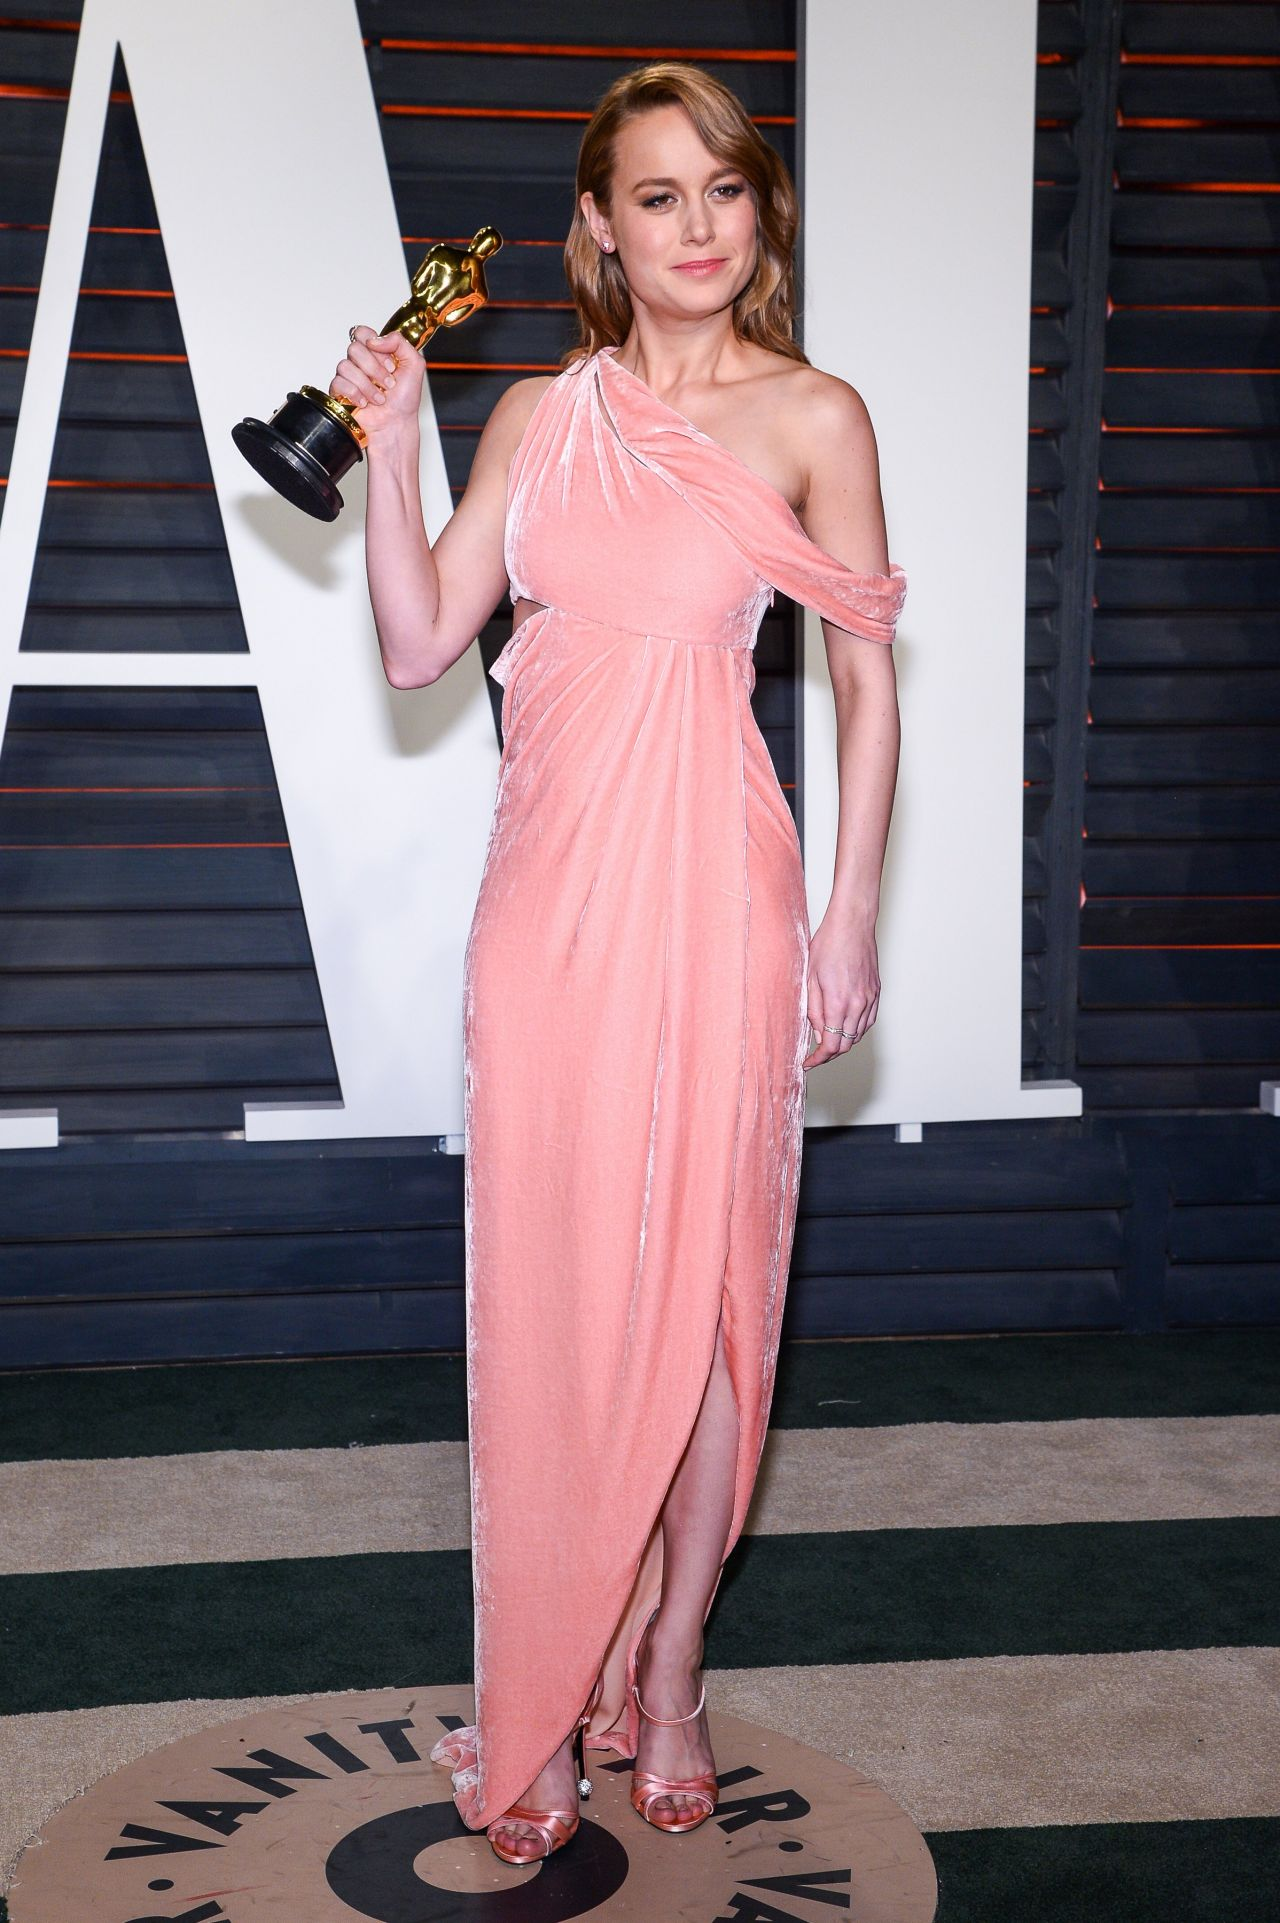 brie-larson-2016-vanity-fair-oscar-party-in-beverly-hills-ca-10